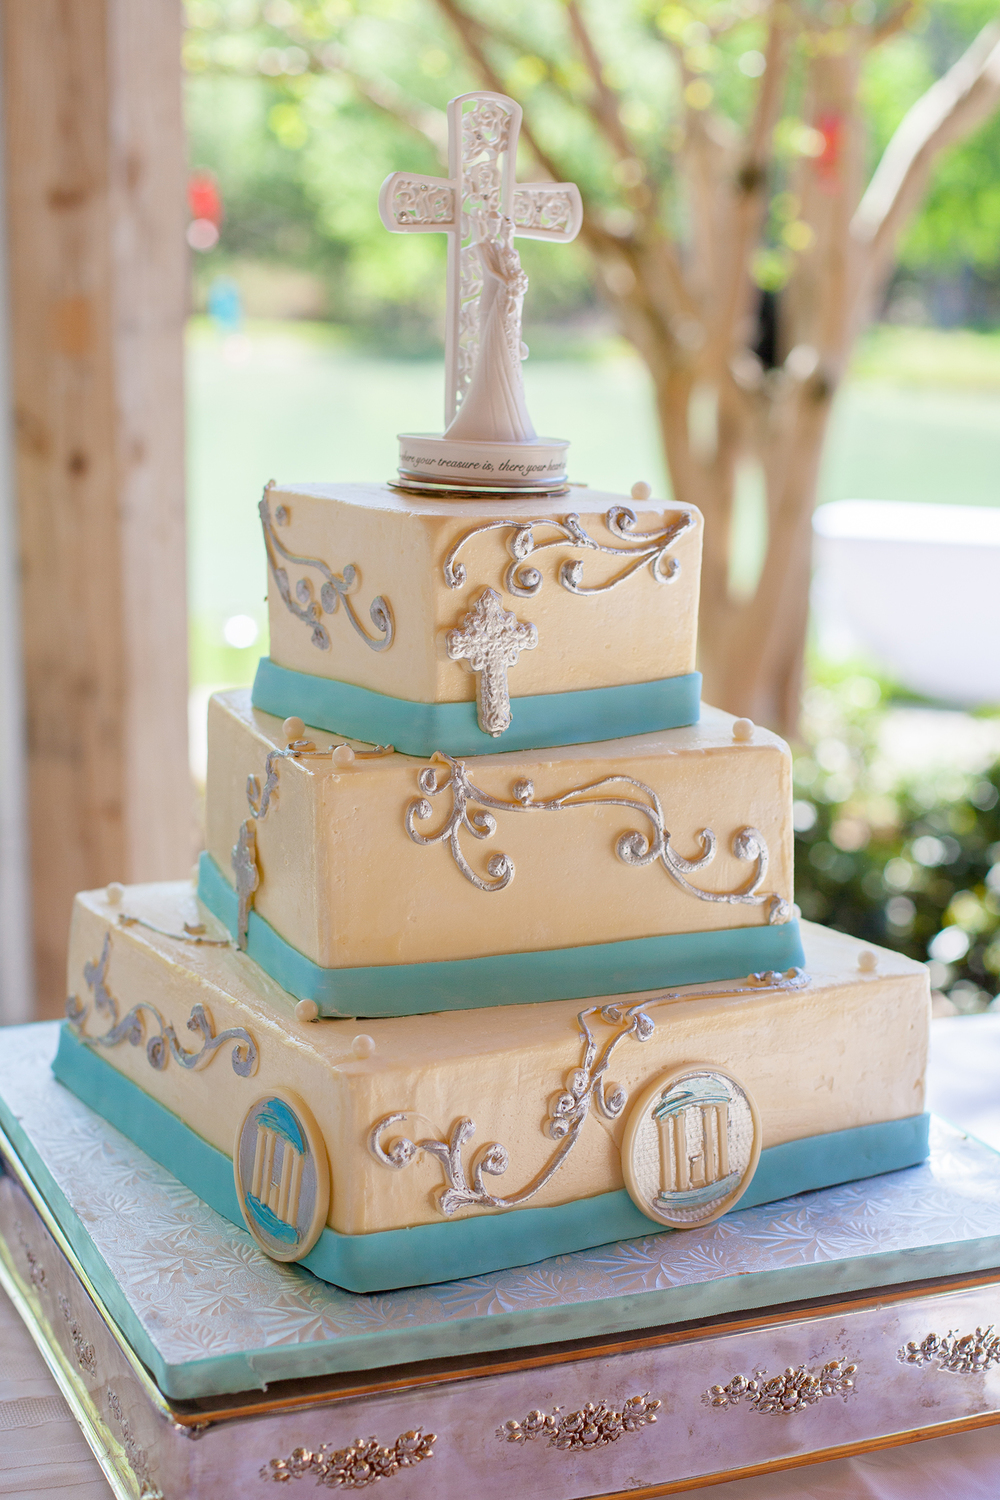 Carolina Blue Cake with Cross Details